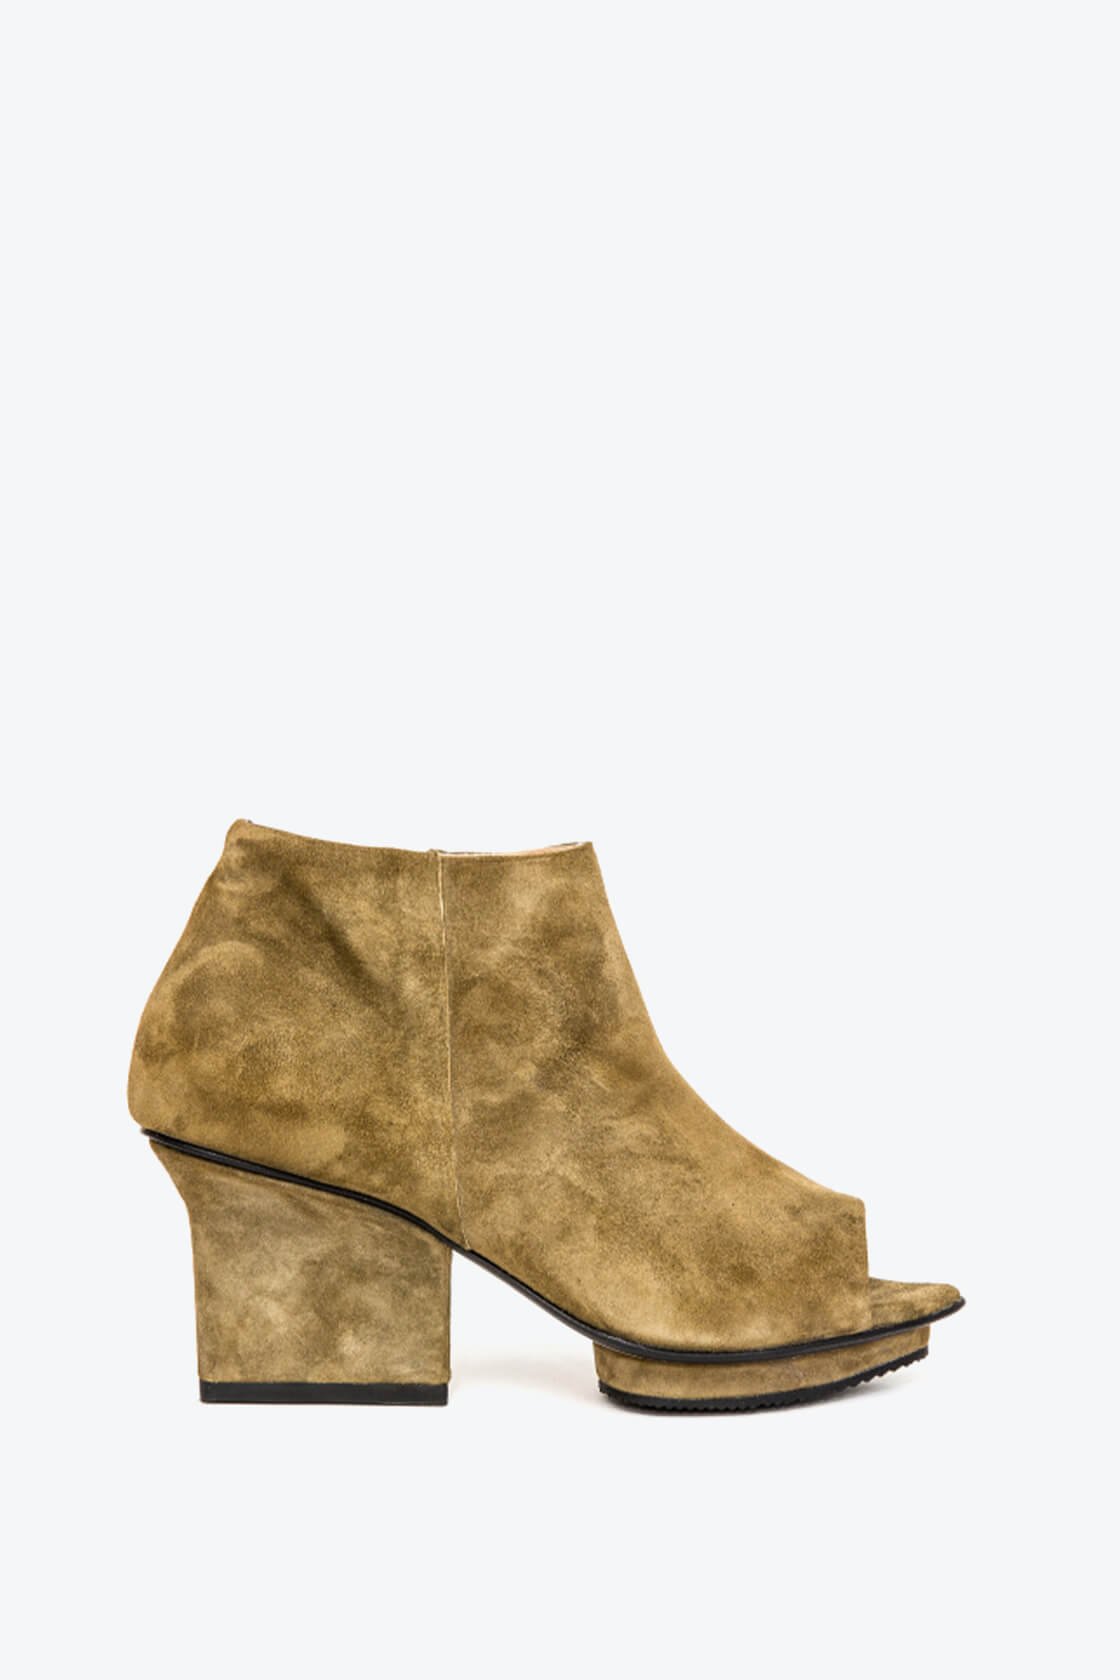 EJK0000036 Christal ankle boots open toe olive 1